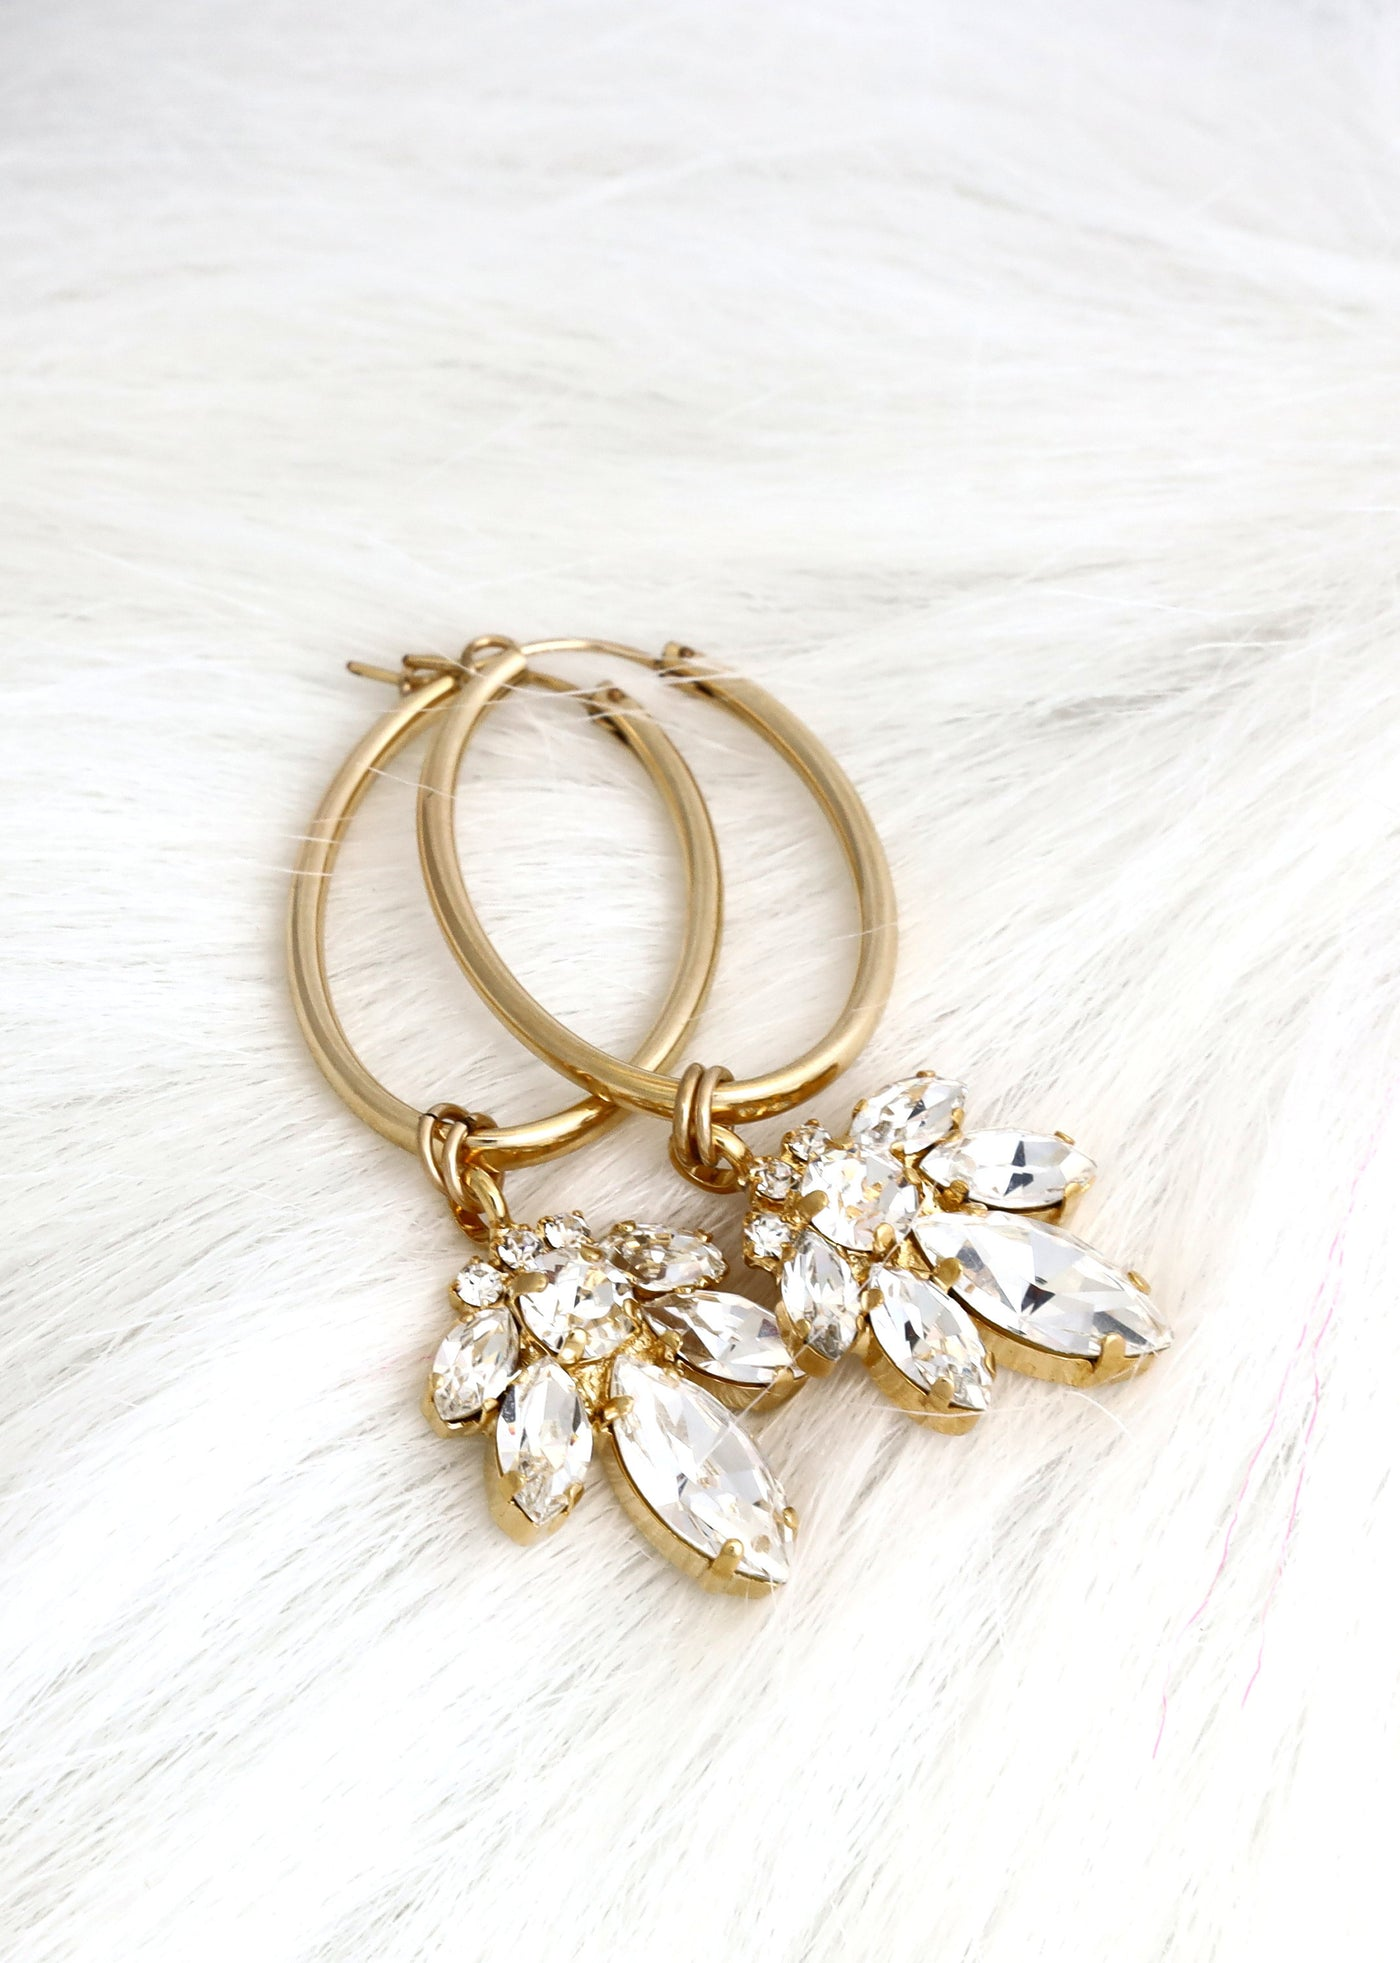 Bridal Hoop Earrings, Gold Hoop Earrings, Bridal Boho chic Earrings, Bridal Long Gold Crystal Earrings, Bridal Swarovski Crystal Earrings